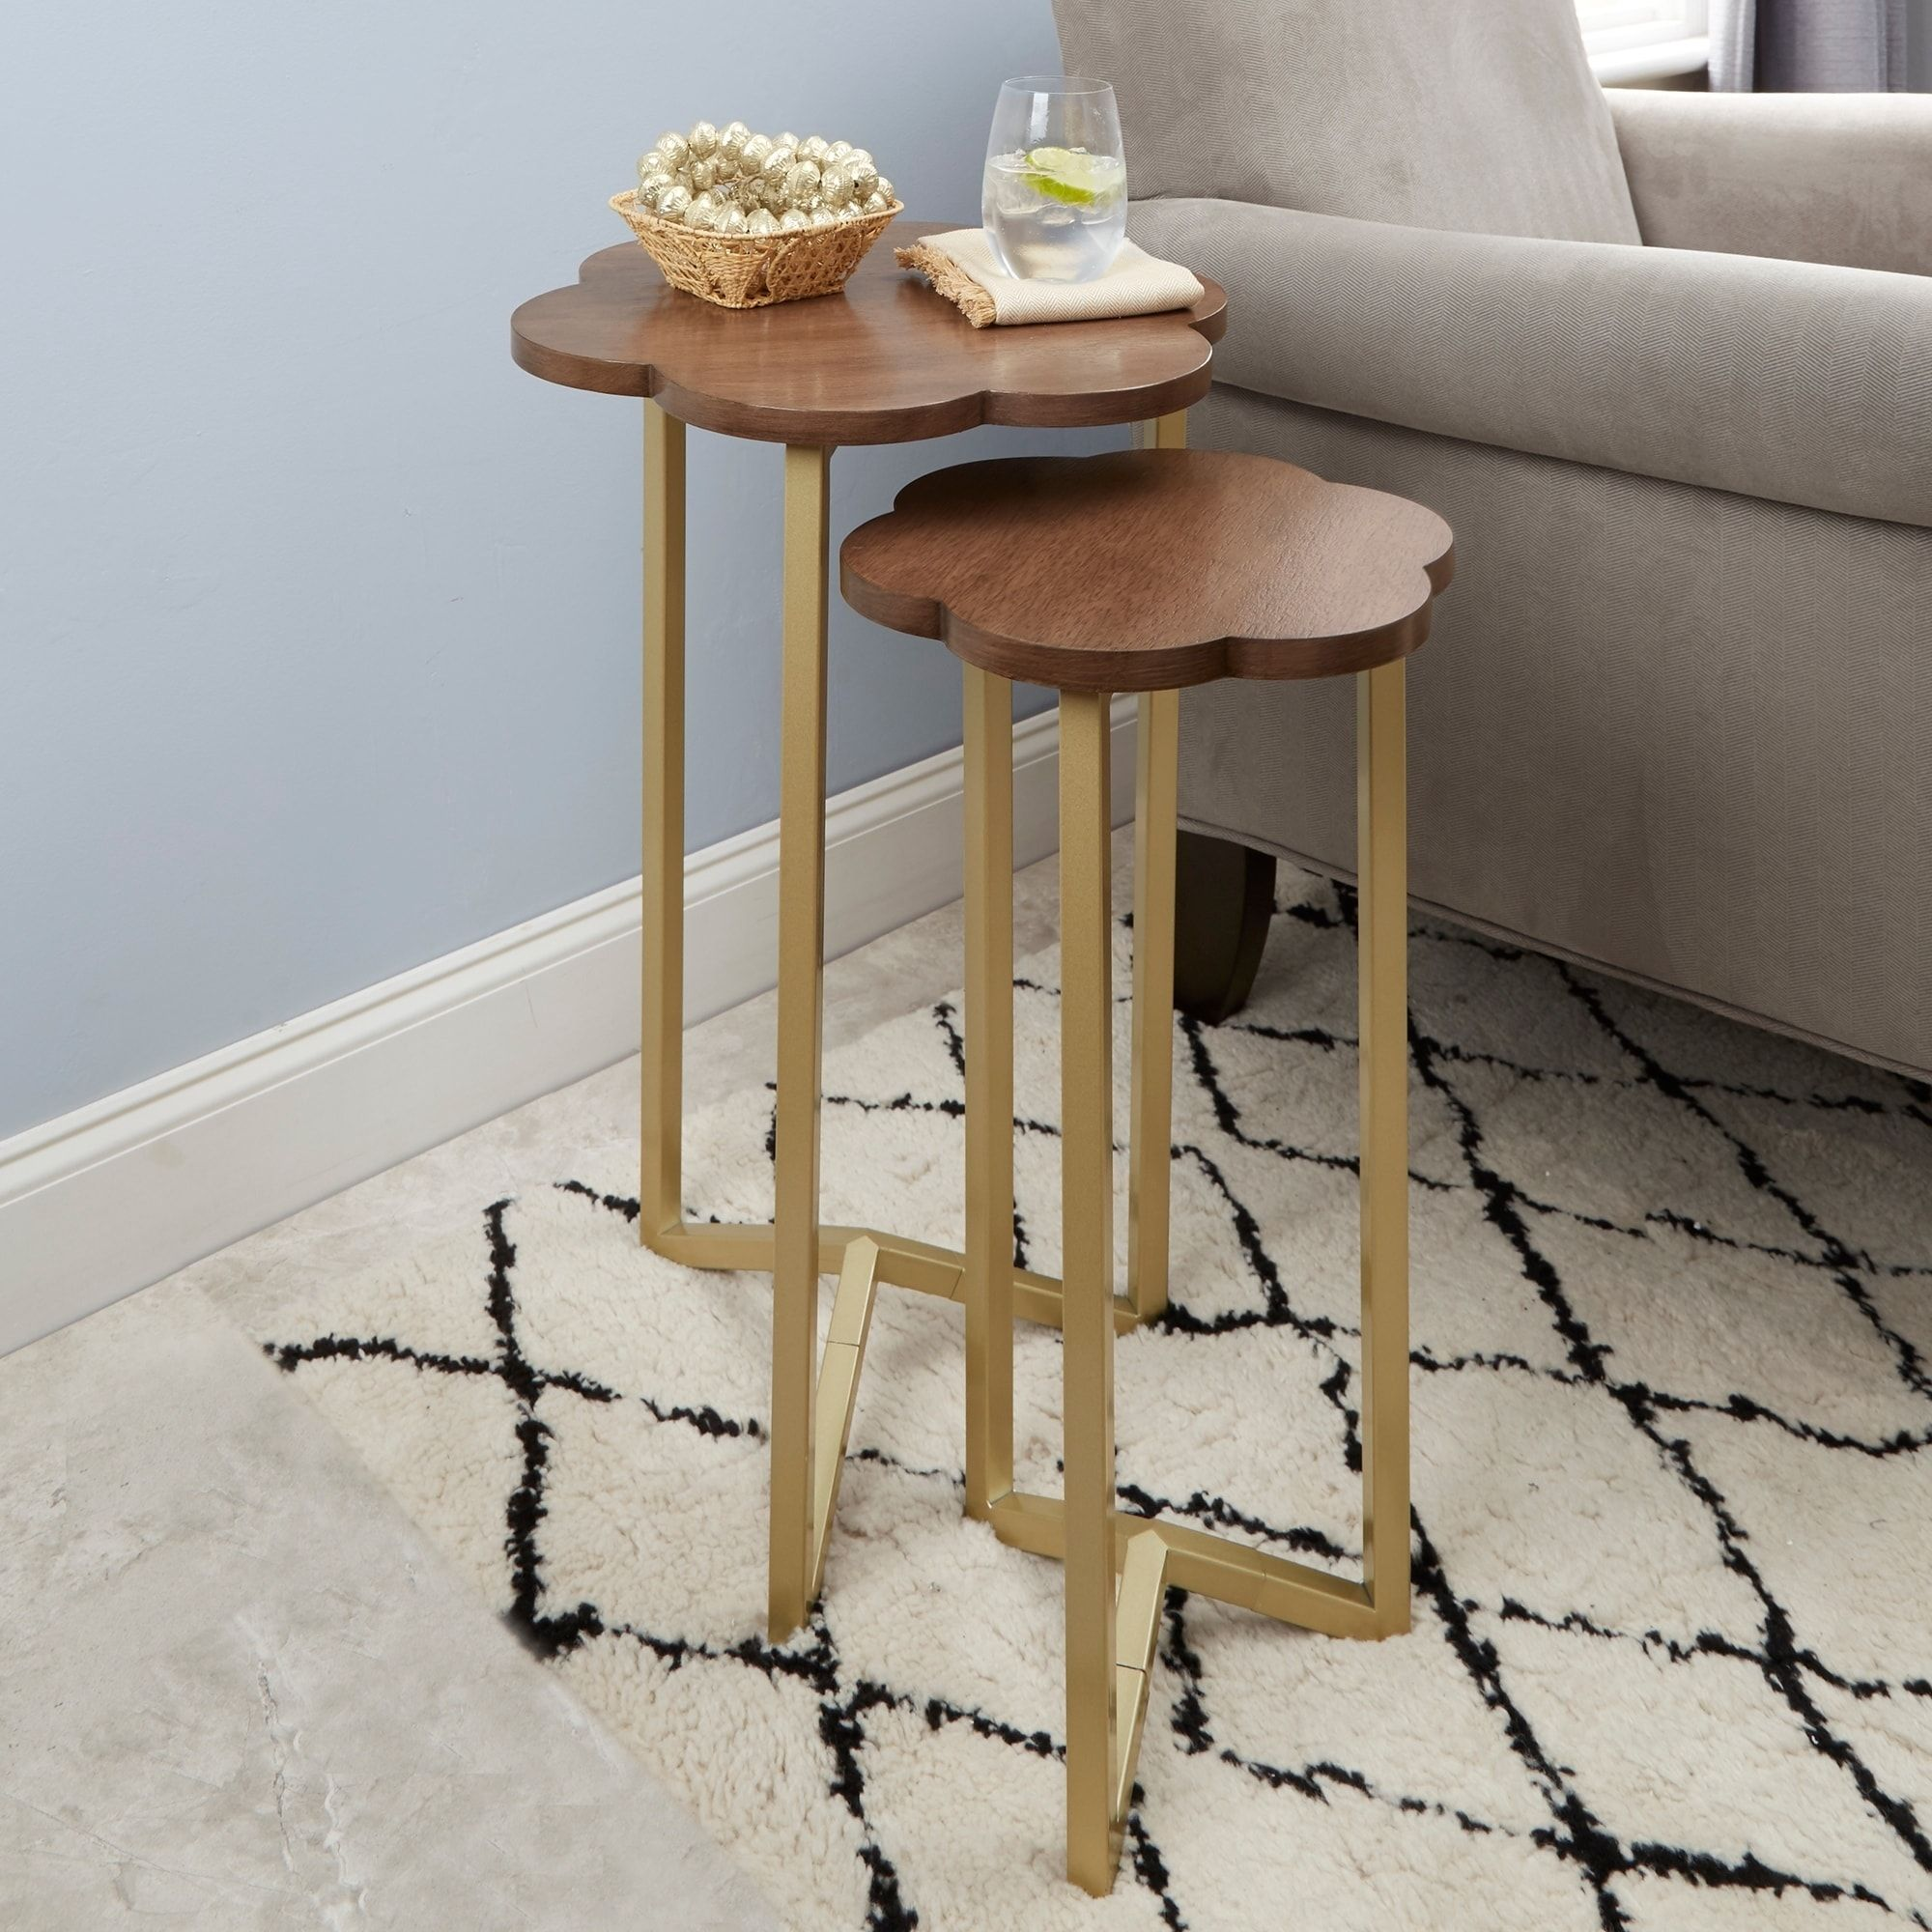 daphne nesting accent tables gold house dreams table plans pine sideboard paper lamp shades farmhouse dining room furniture hampton bay outdoor chairs target glass coffee drum kit